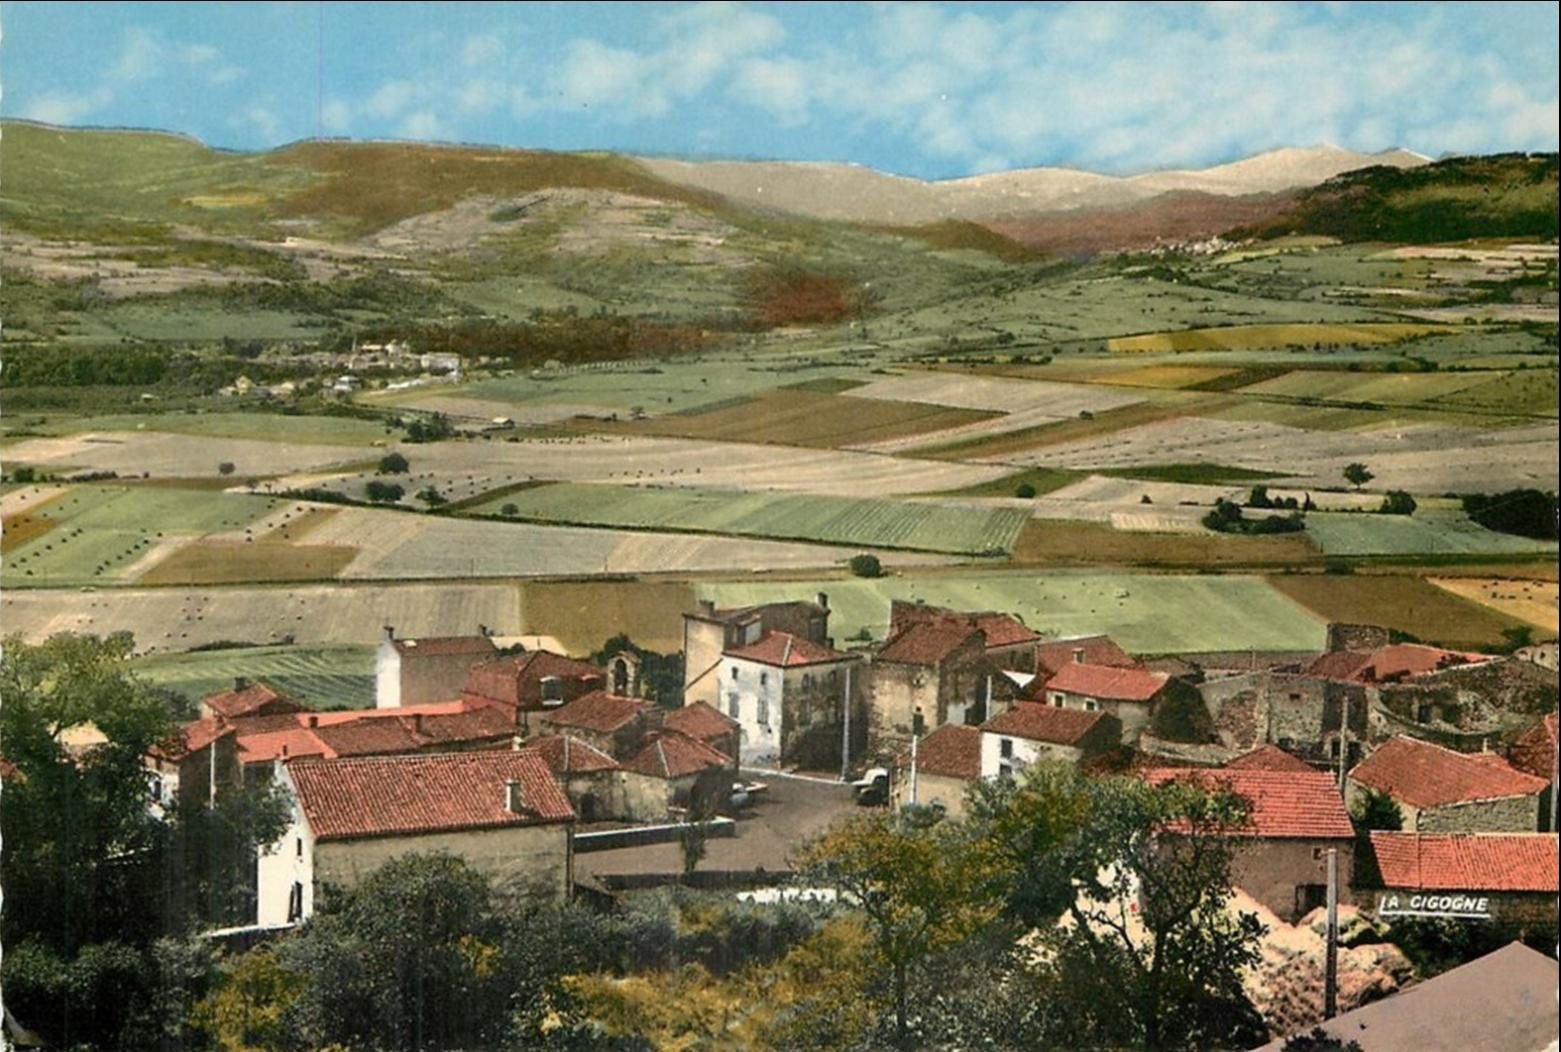 Les villages du Puy de Dome: Pardines